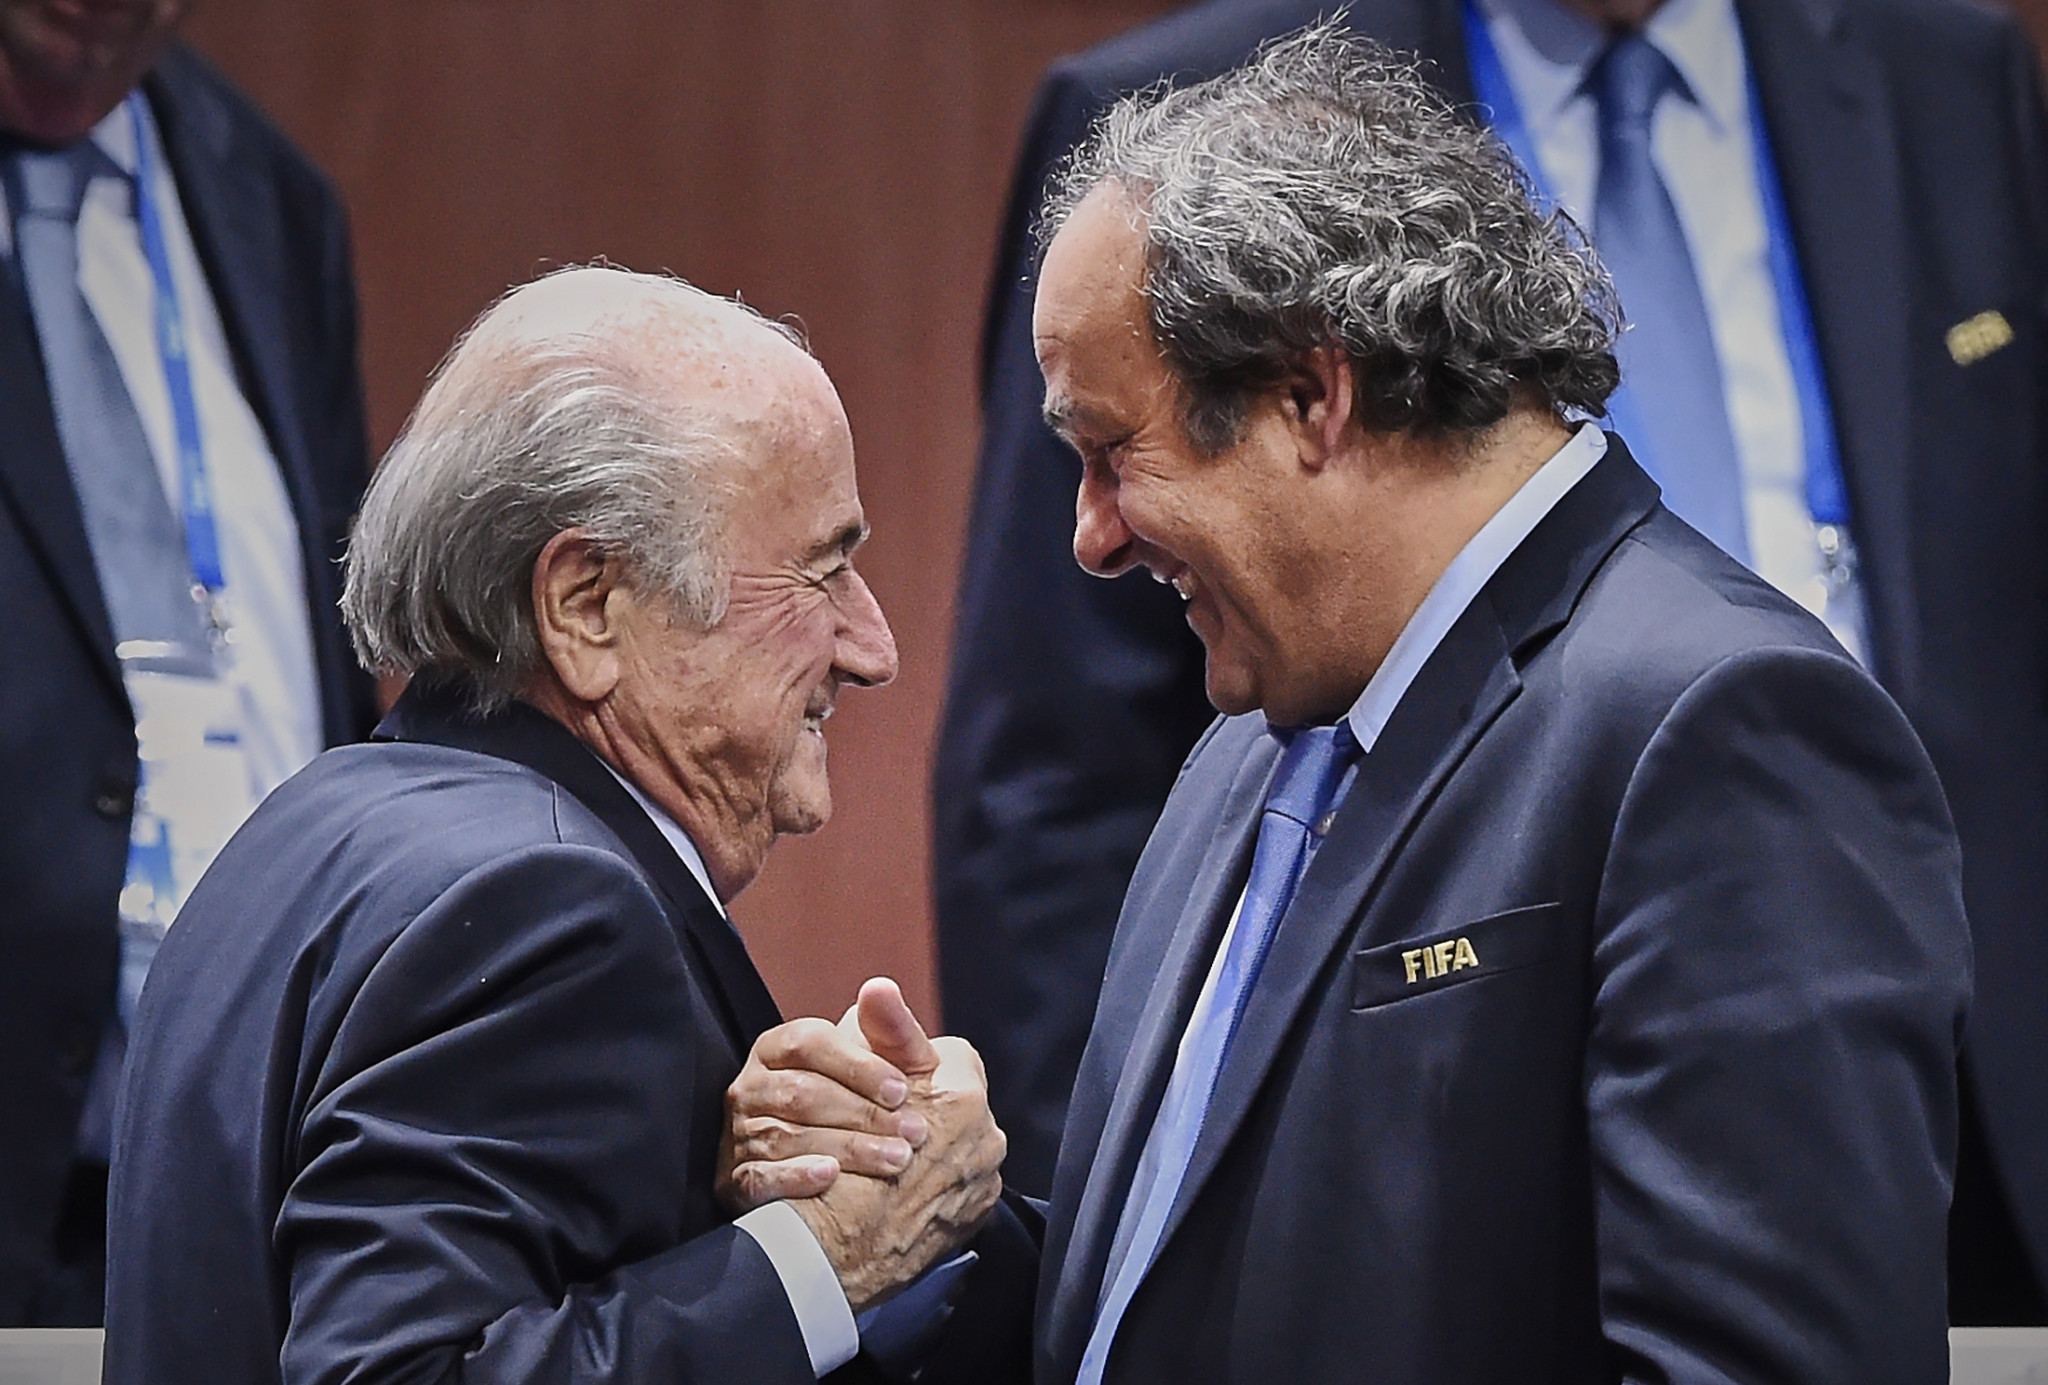 Russia to welcome Blatter and Platini to 2018 FIFA World Cup